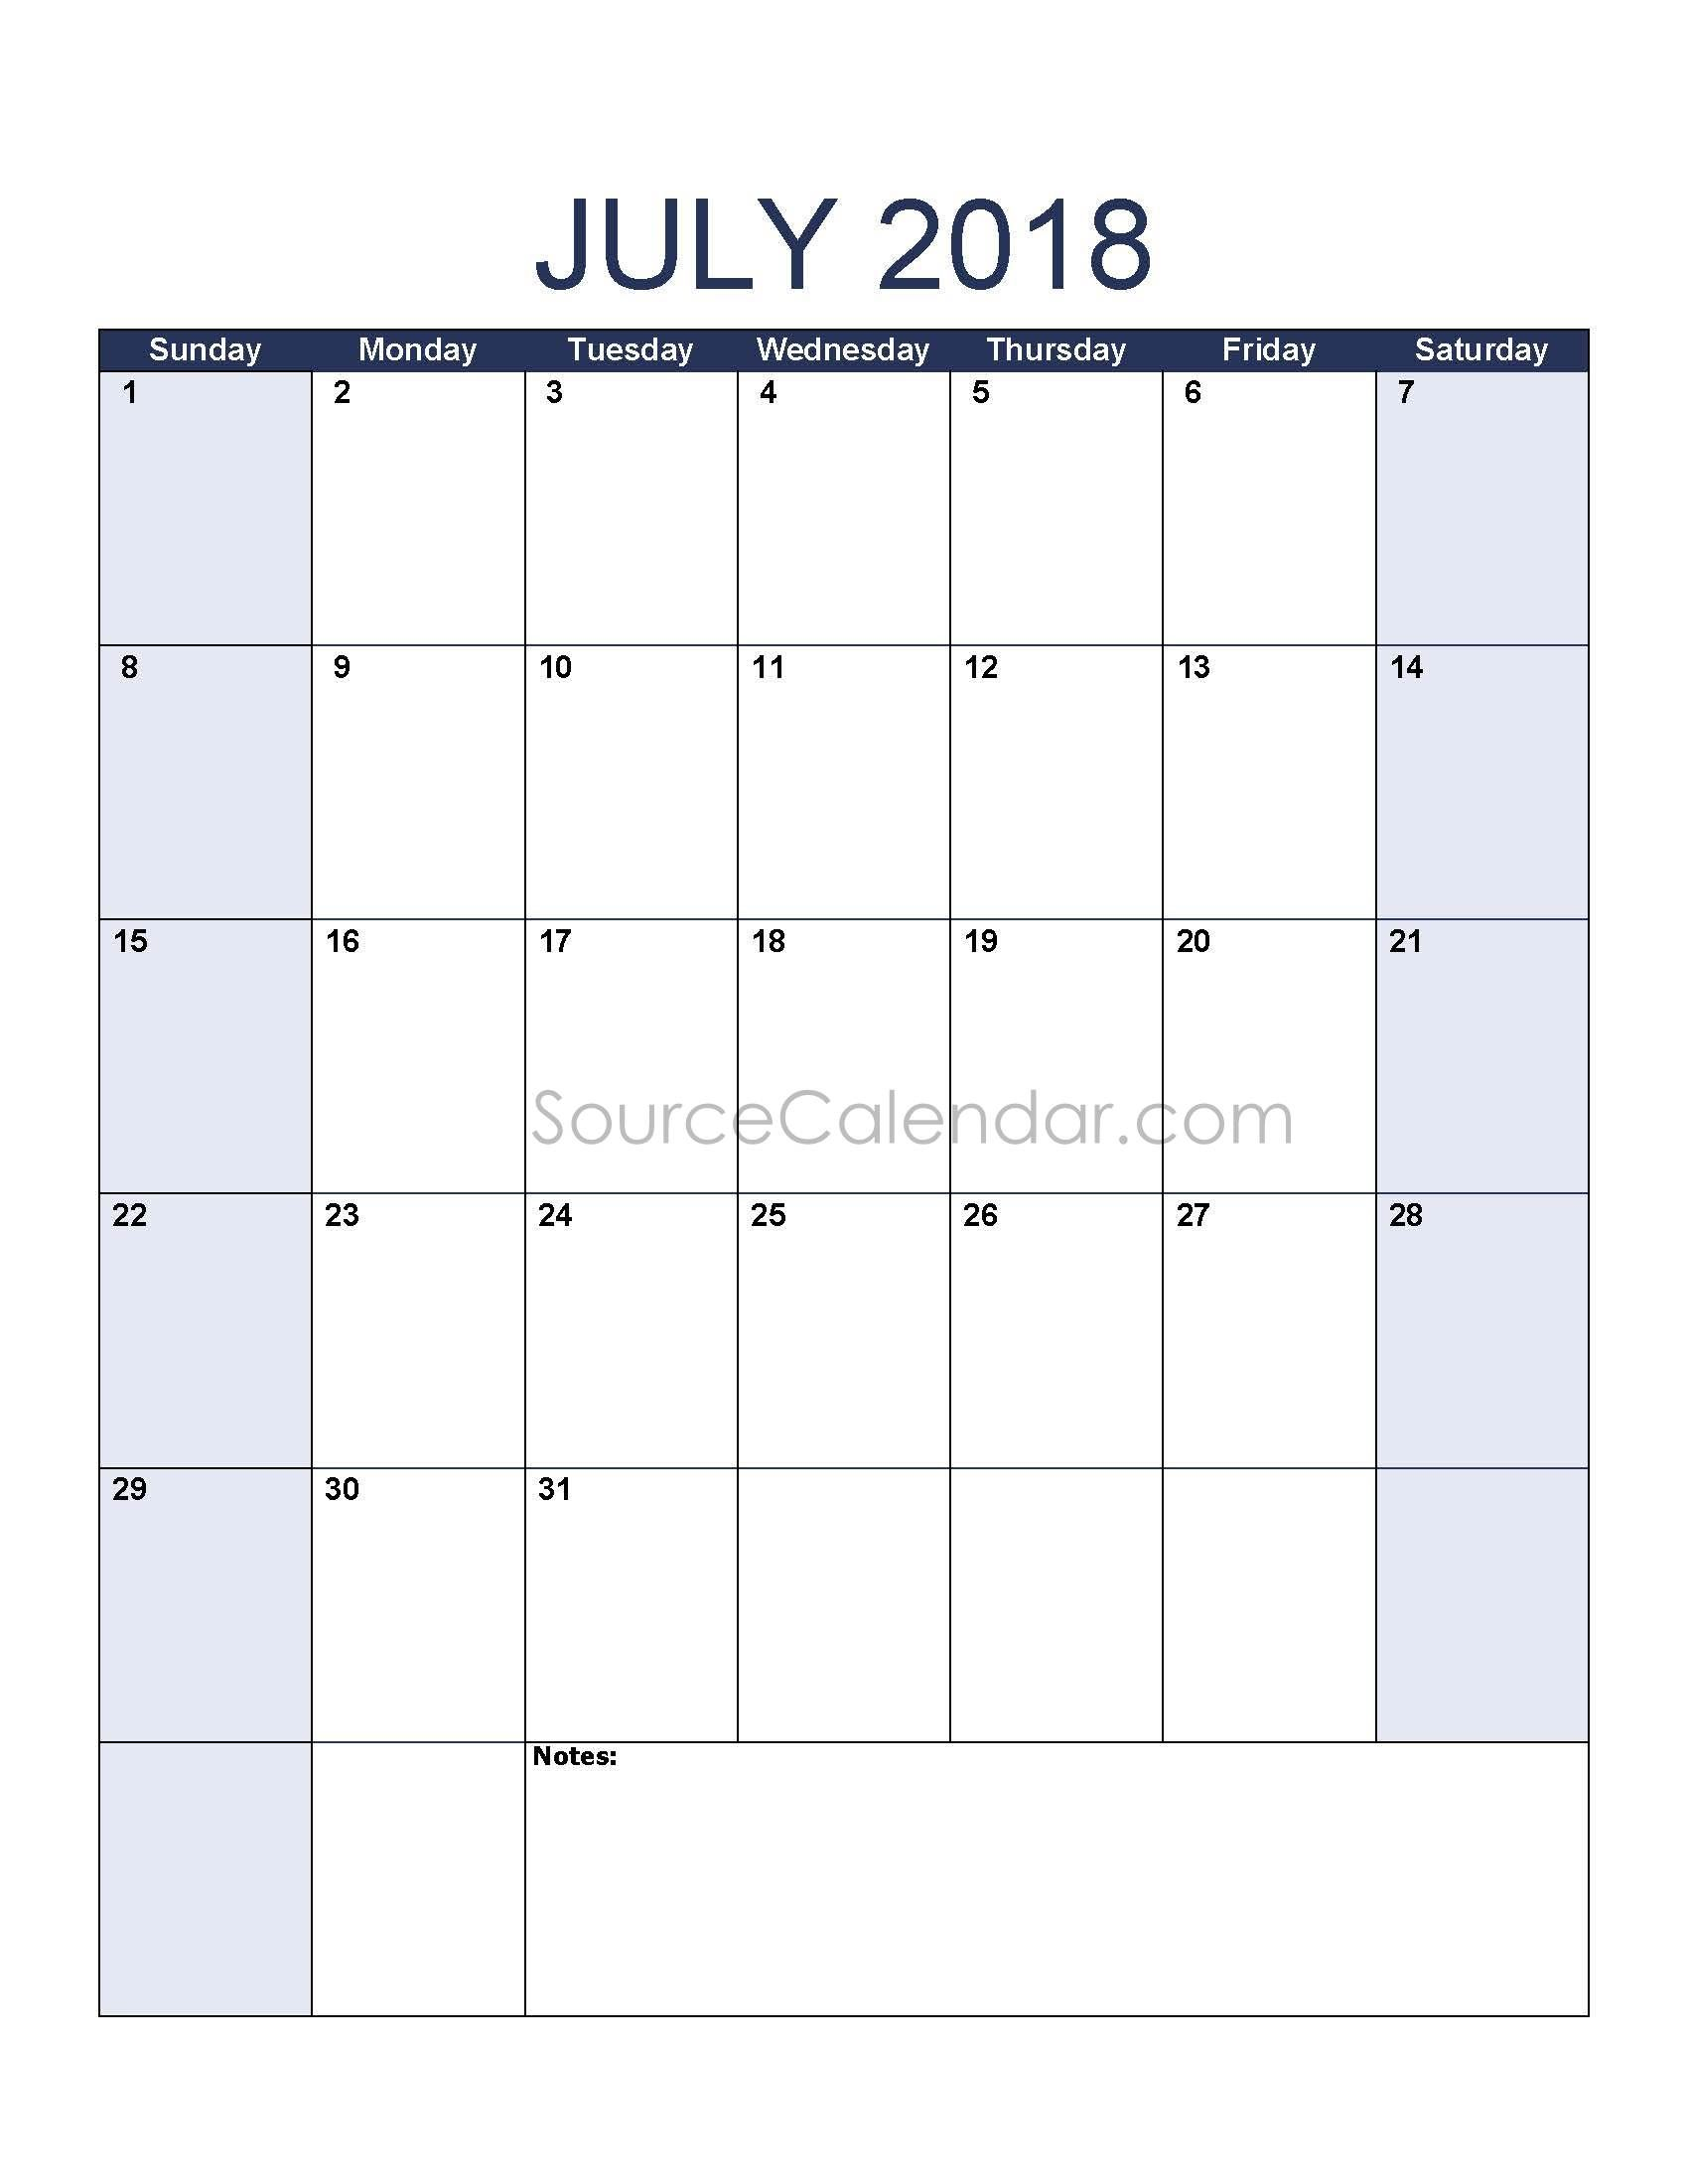 July 2018 Calendars for Word, Excel & PDF July 2018 Calendars for ...